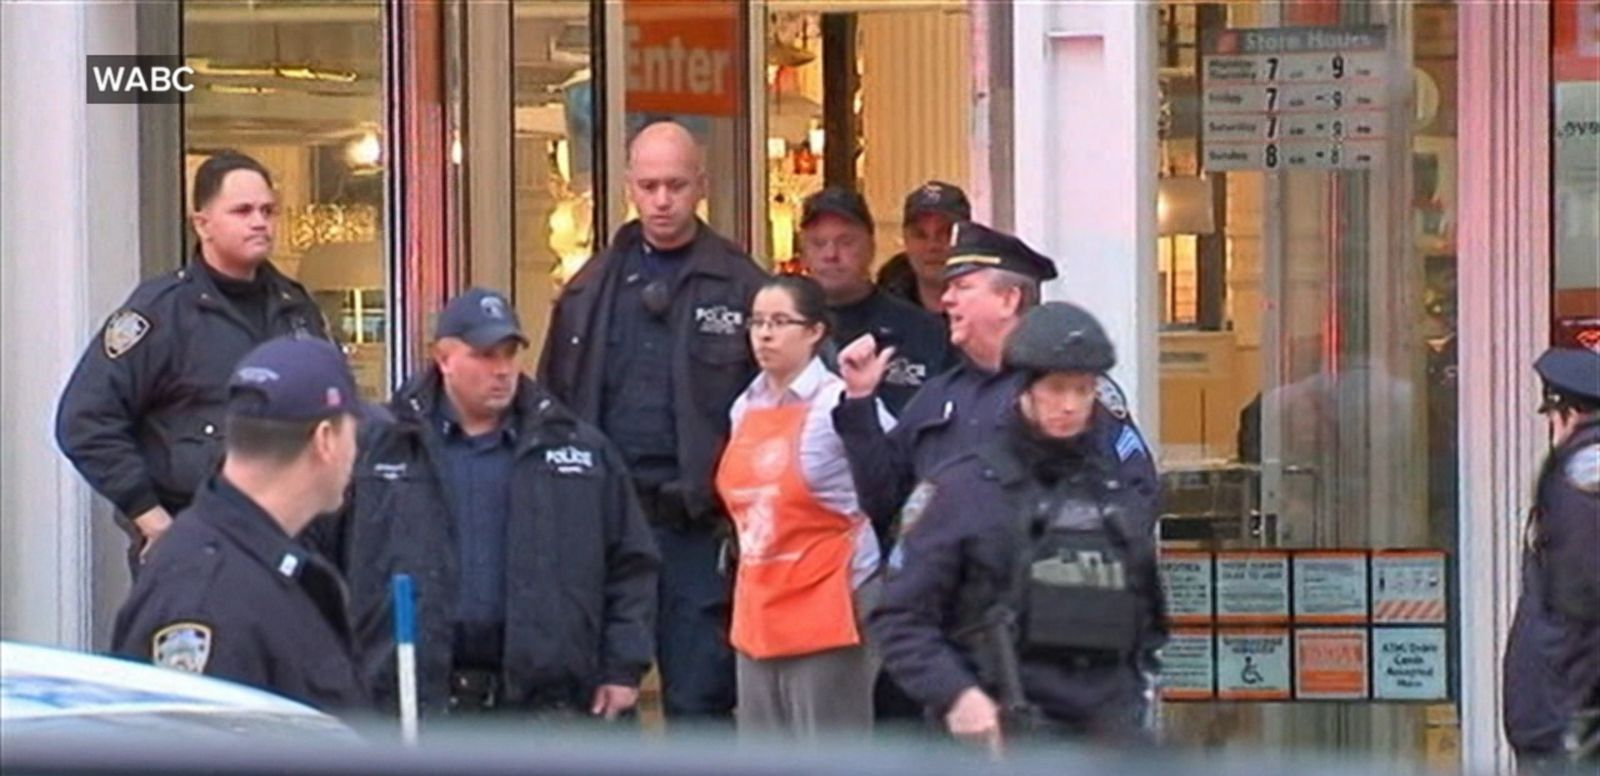 VIDEO: A packed Home Depot in Manhattan was evacuated Sunday after two employees were killed in a murder-suicide.